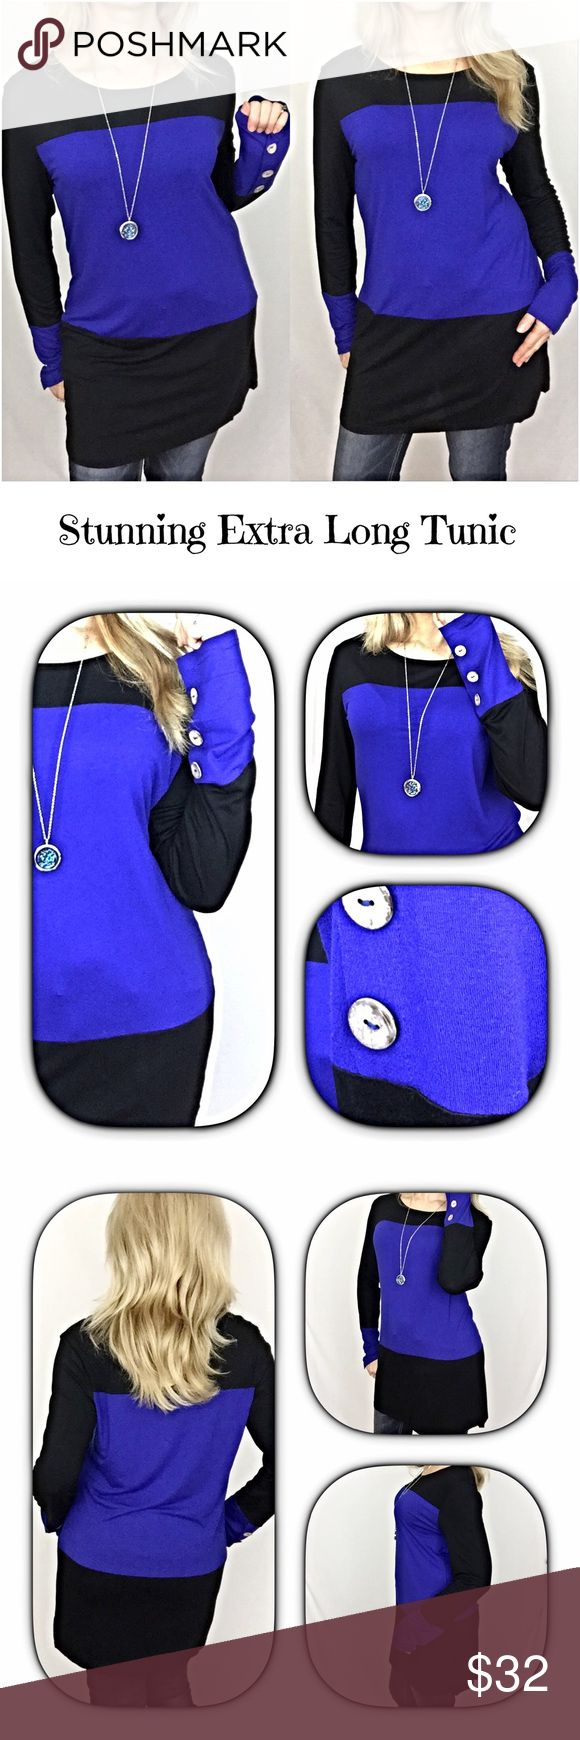 "Stunning Extra Long Colorblock Tunic SM Stunning royal blue & black extra long tunic with button sleeve detail. Lightweight, stretchy & flattering fit. Definitely long enough to cover your bottom to wear with leggings, jeggings & skinnies💙95% cotton/5% Spandex  💙Small 2/4 Bust 32-34 Length 30.5"" 💙Medium 6/8  Bust 36-38 Length 31"" 💙Large 10/12  Bust 40-42 Length 31.5"" Tops"